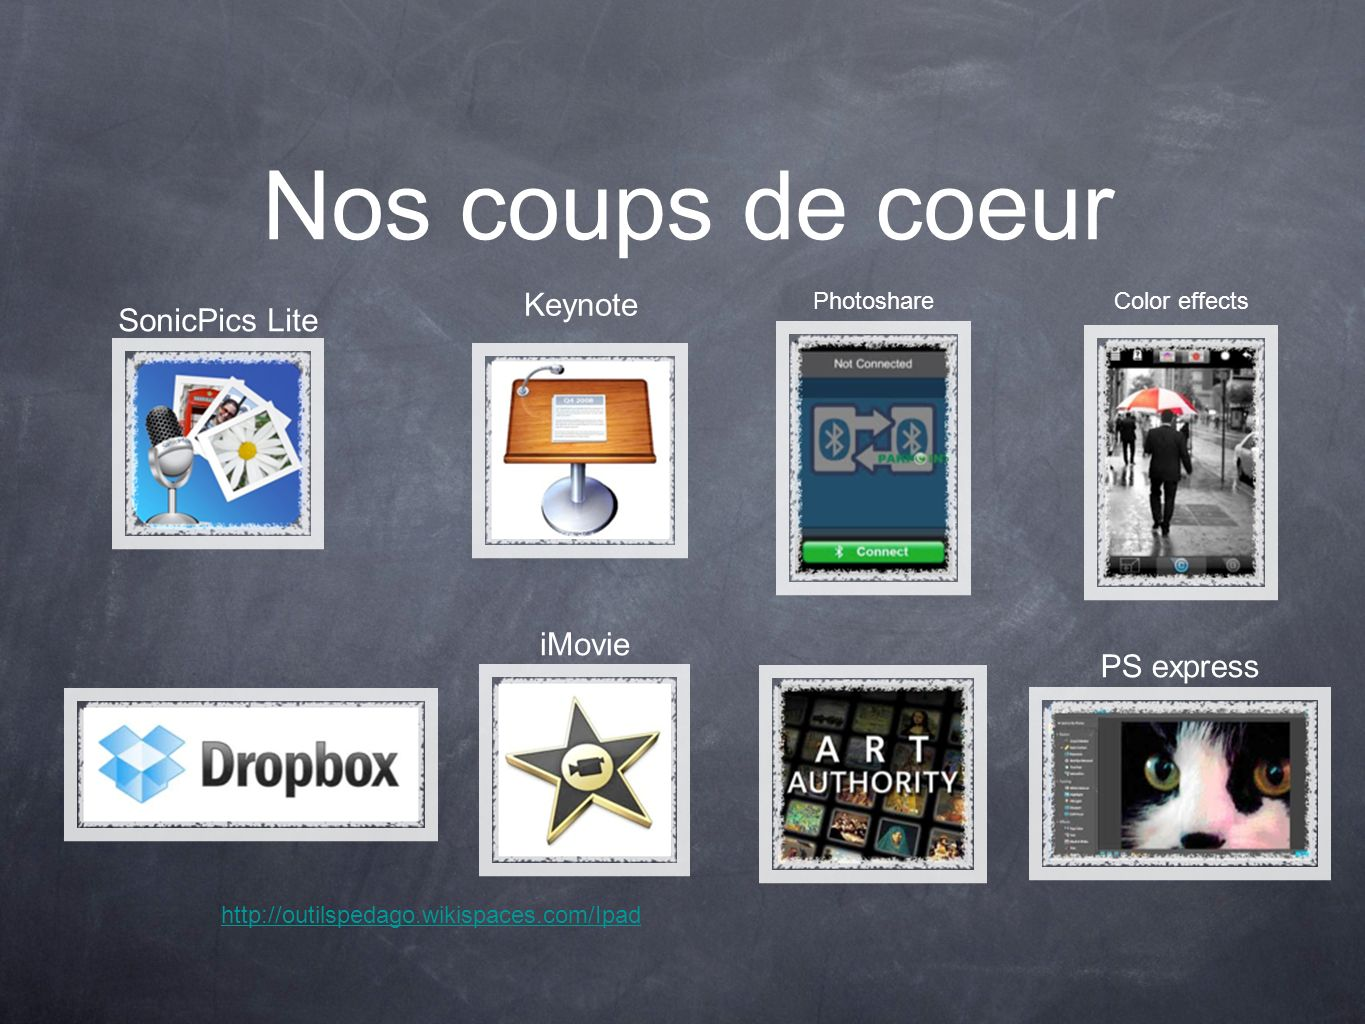 Nos coups de coeur Photoshare Color effects Keynote PS express http://outilspedago.wikispaces.com/Ipad iMovie SonicPics Lite